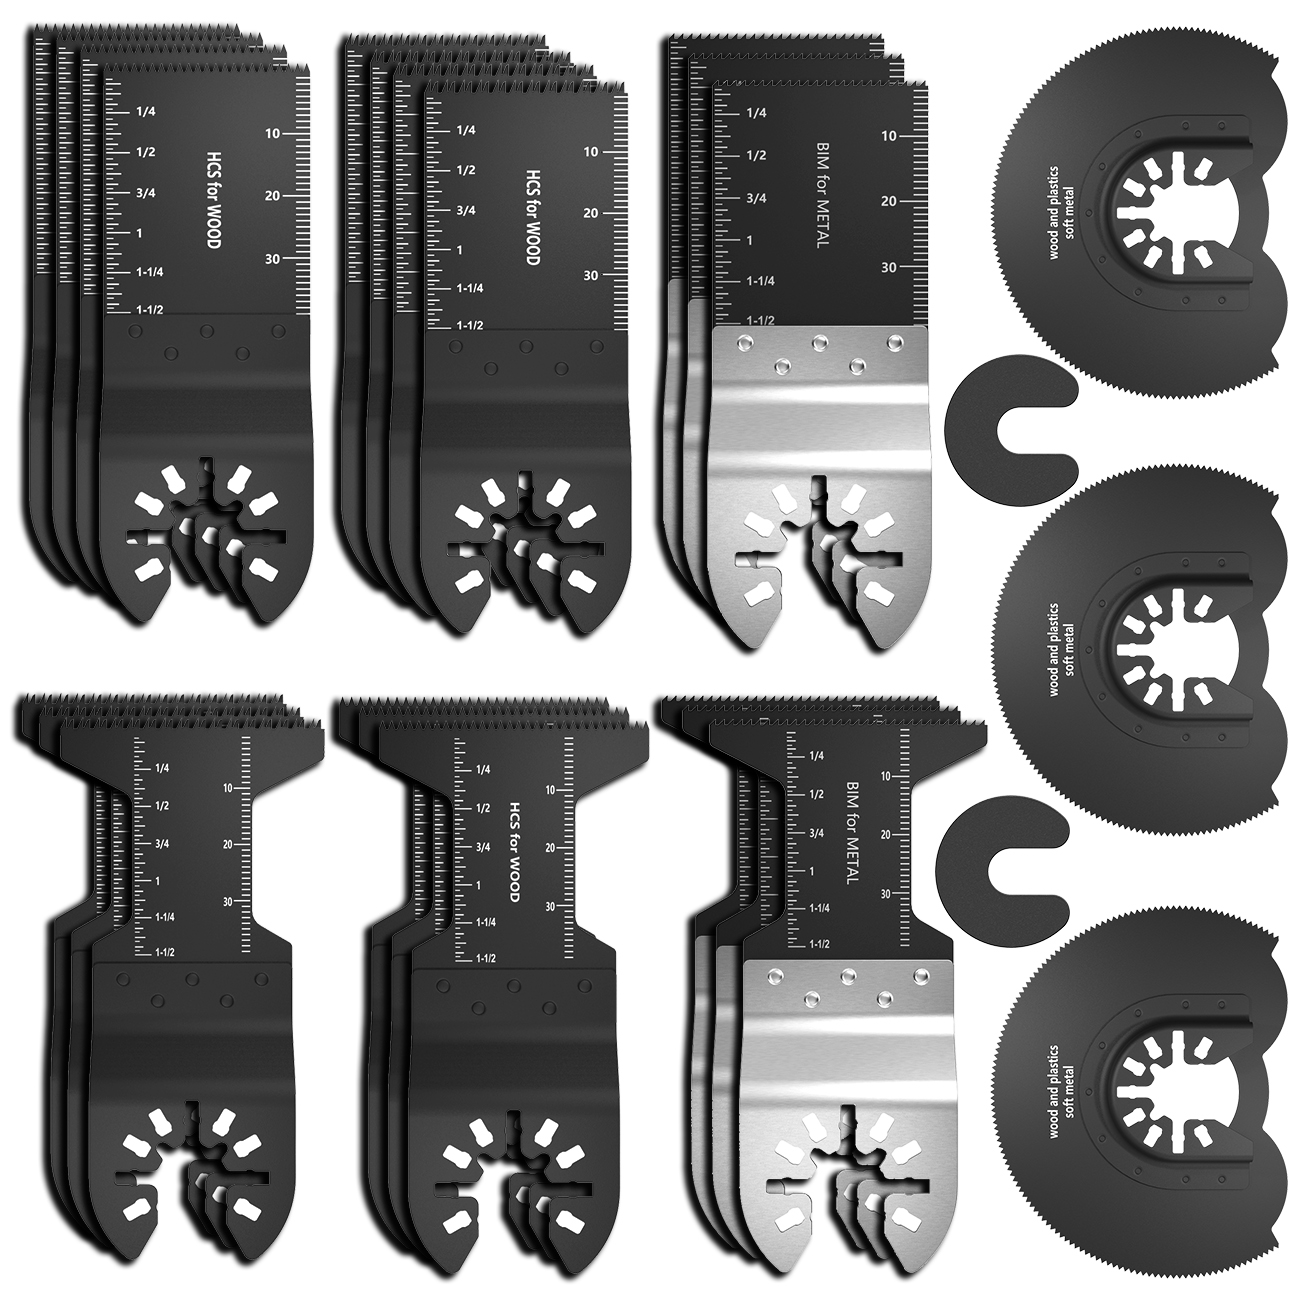 25Pcs/Set Oscillating Multi Tool Saw Blade Multi-Function Cutting Wood Tools For Renovator Power Cutting Multimaster Tools